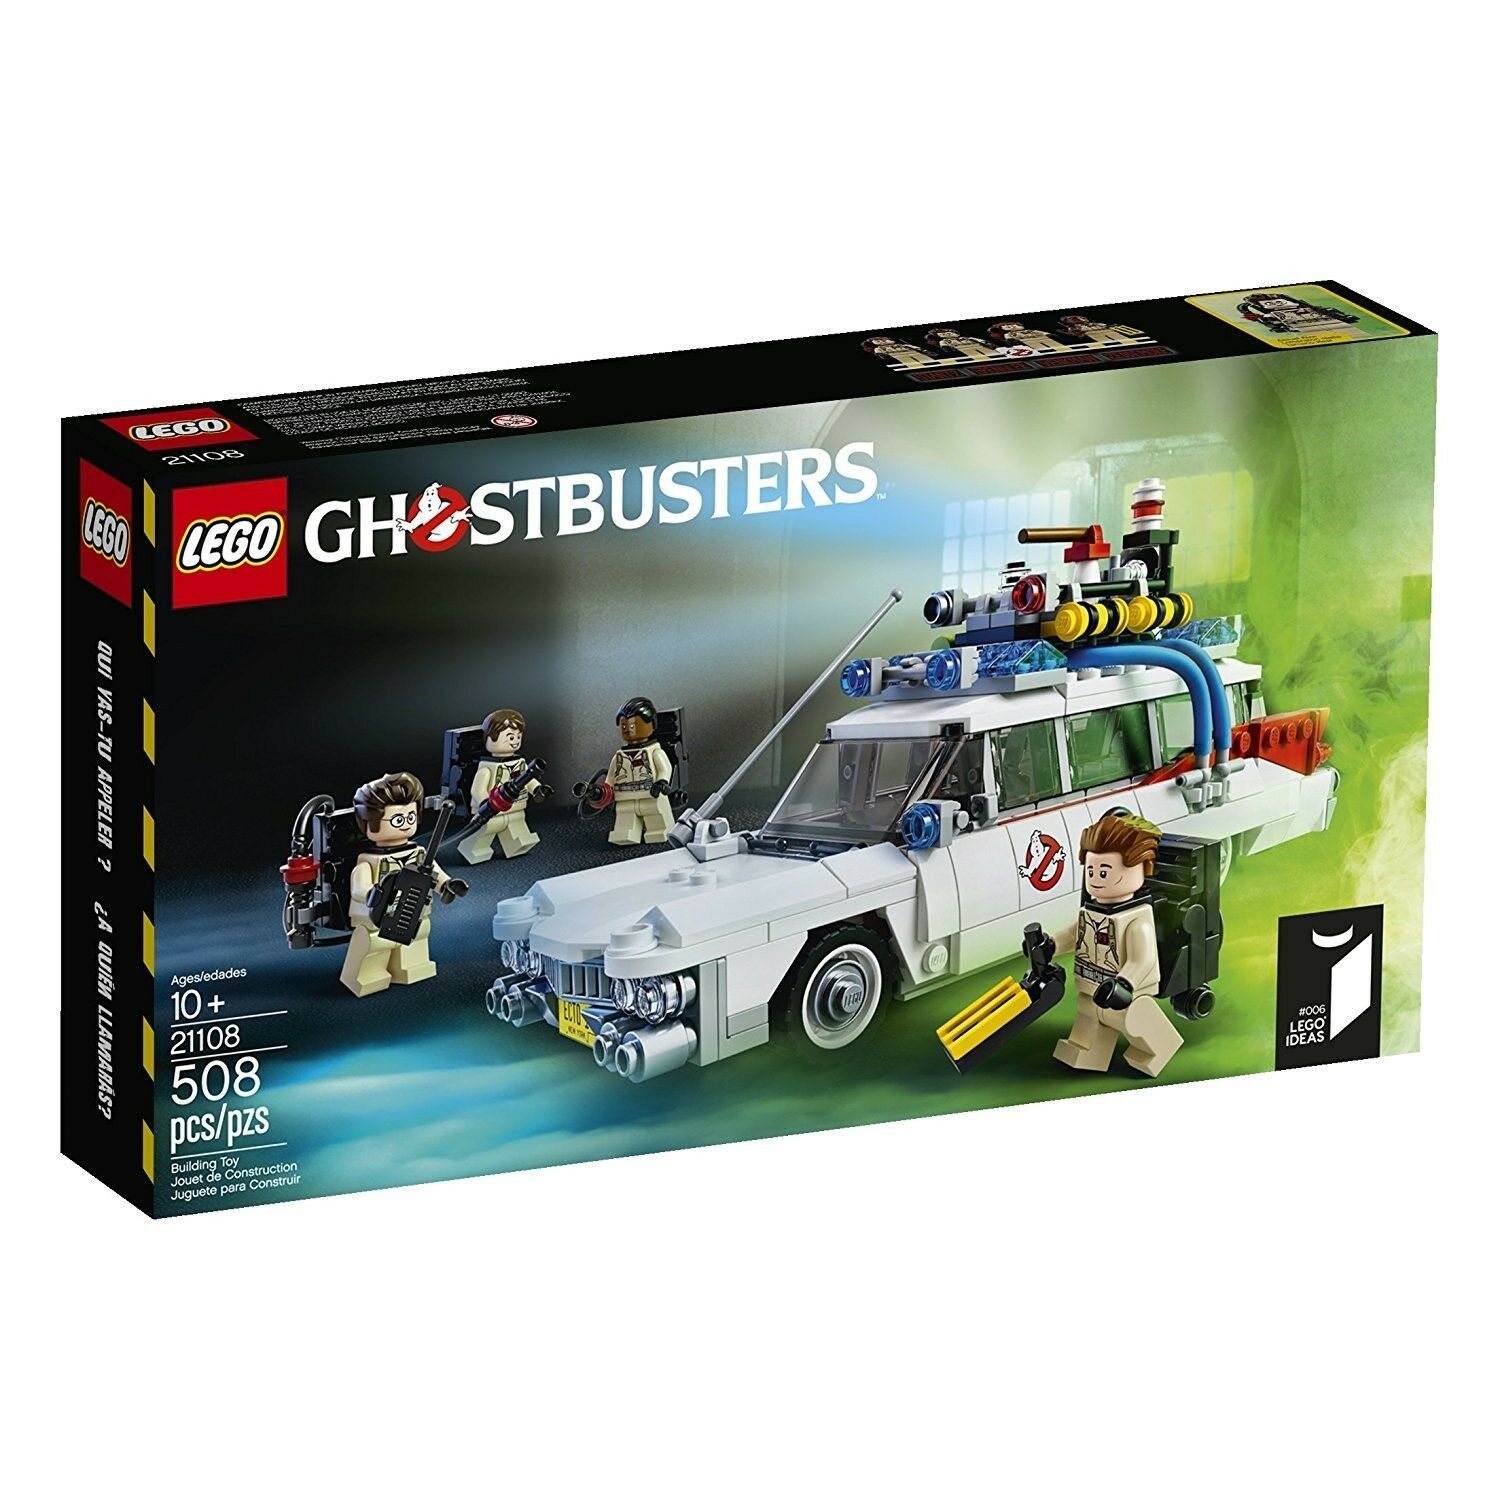 Lego IDEAS Set 21108 - GHOSTBUSTERS ECTO-1 - CUUSOO, RETIROT, BRAND NEW & SEALED